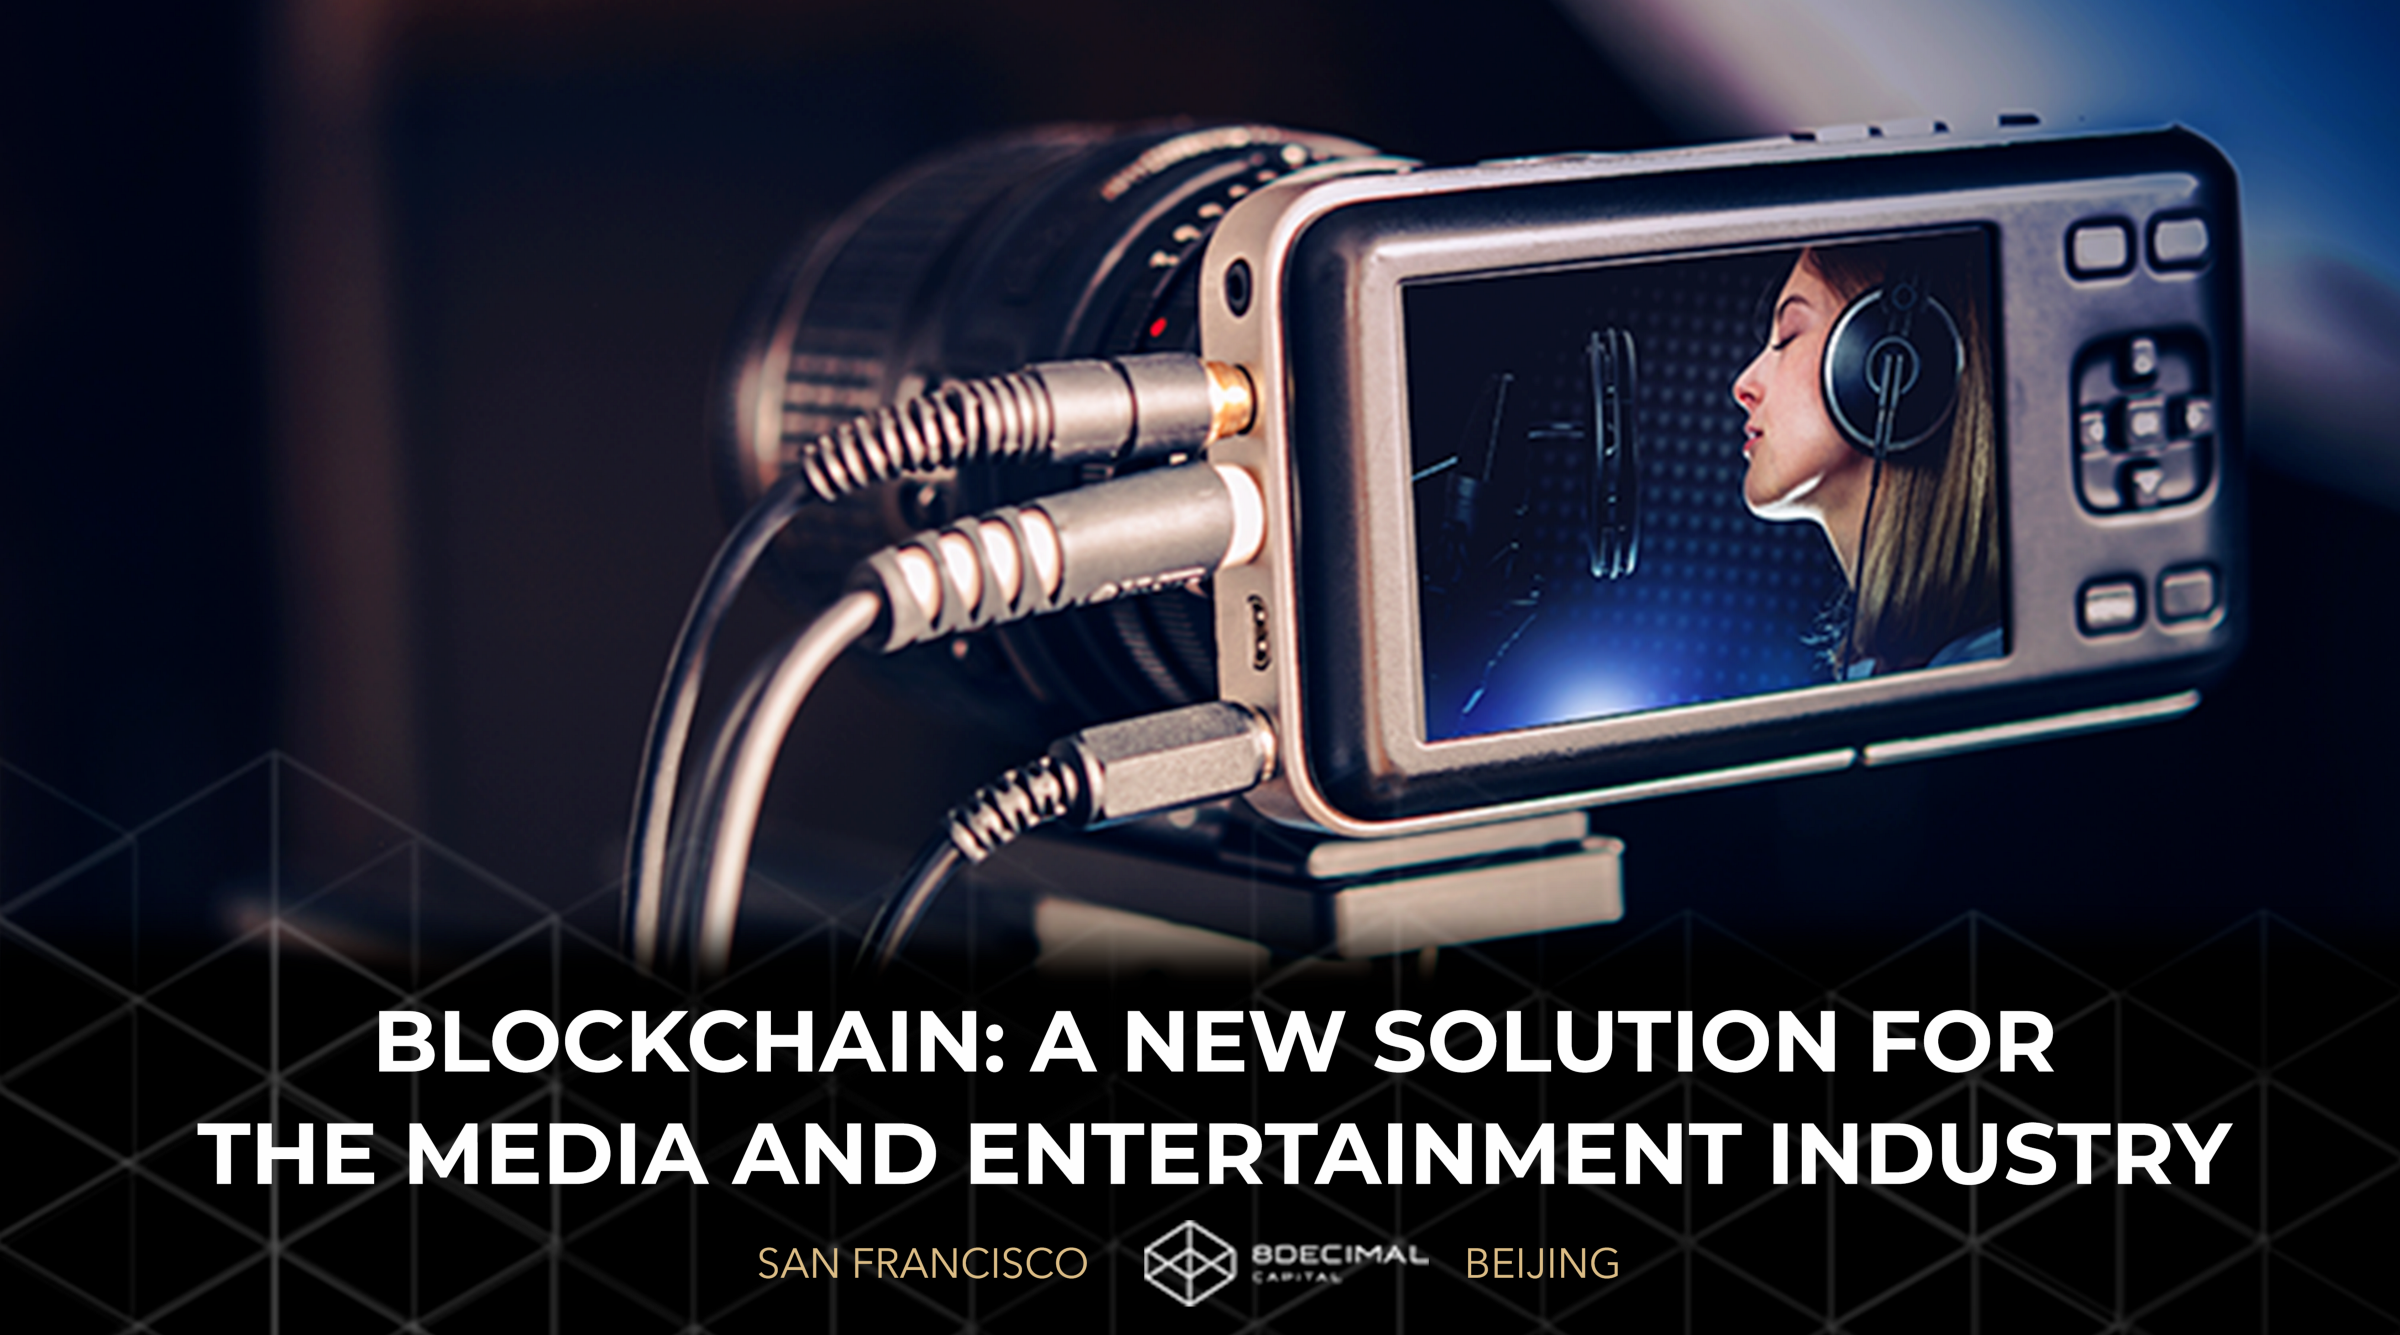 /blockchain-a-new-solution-for-the-media-and-entertainment-industry-f8c83ad3dc07 feature image